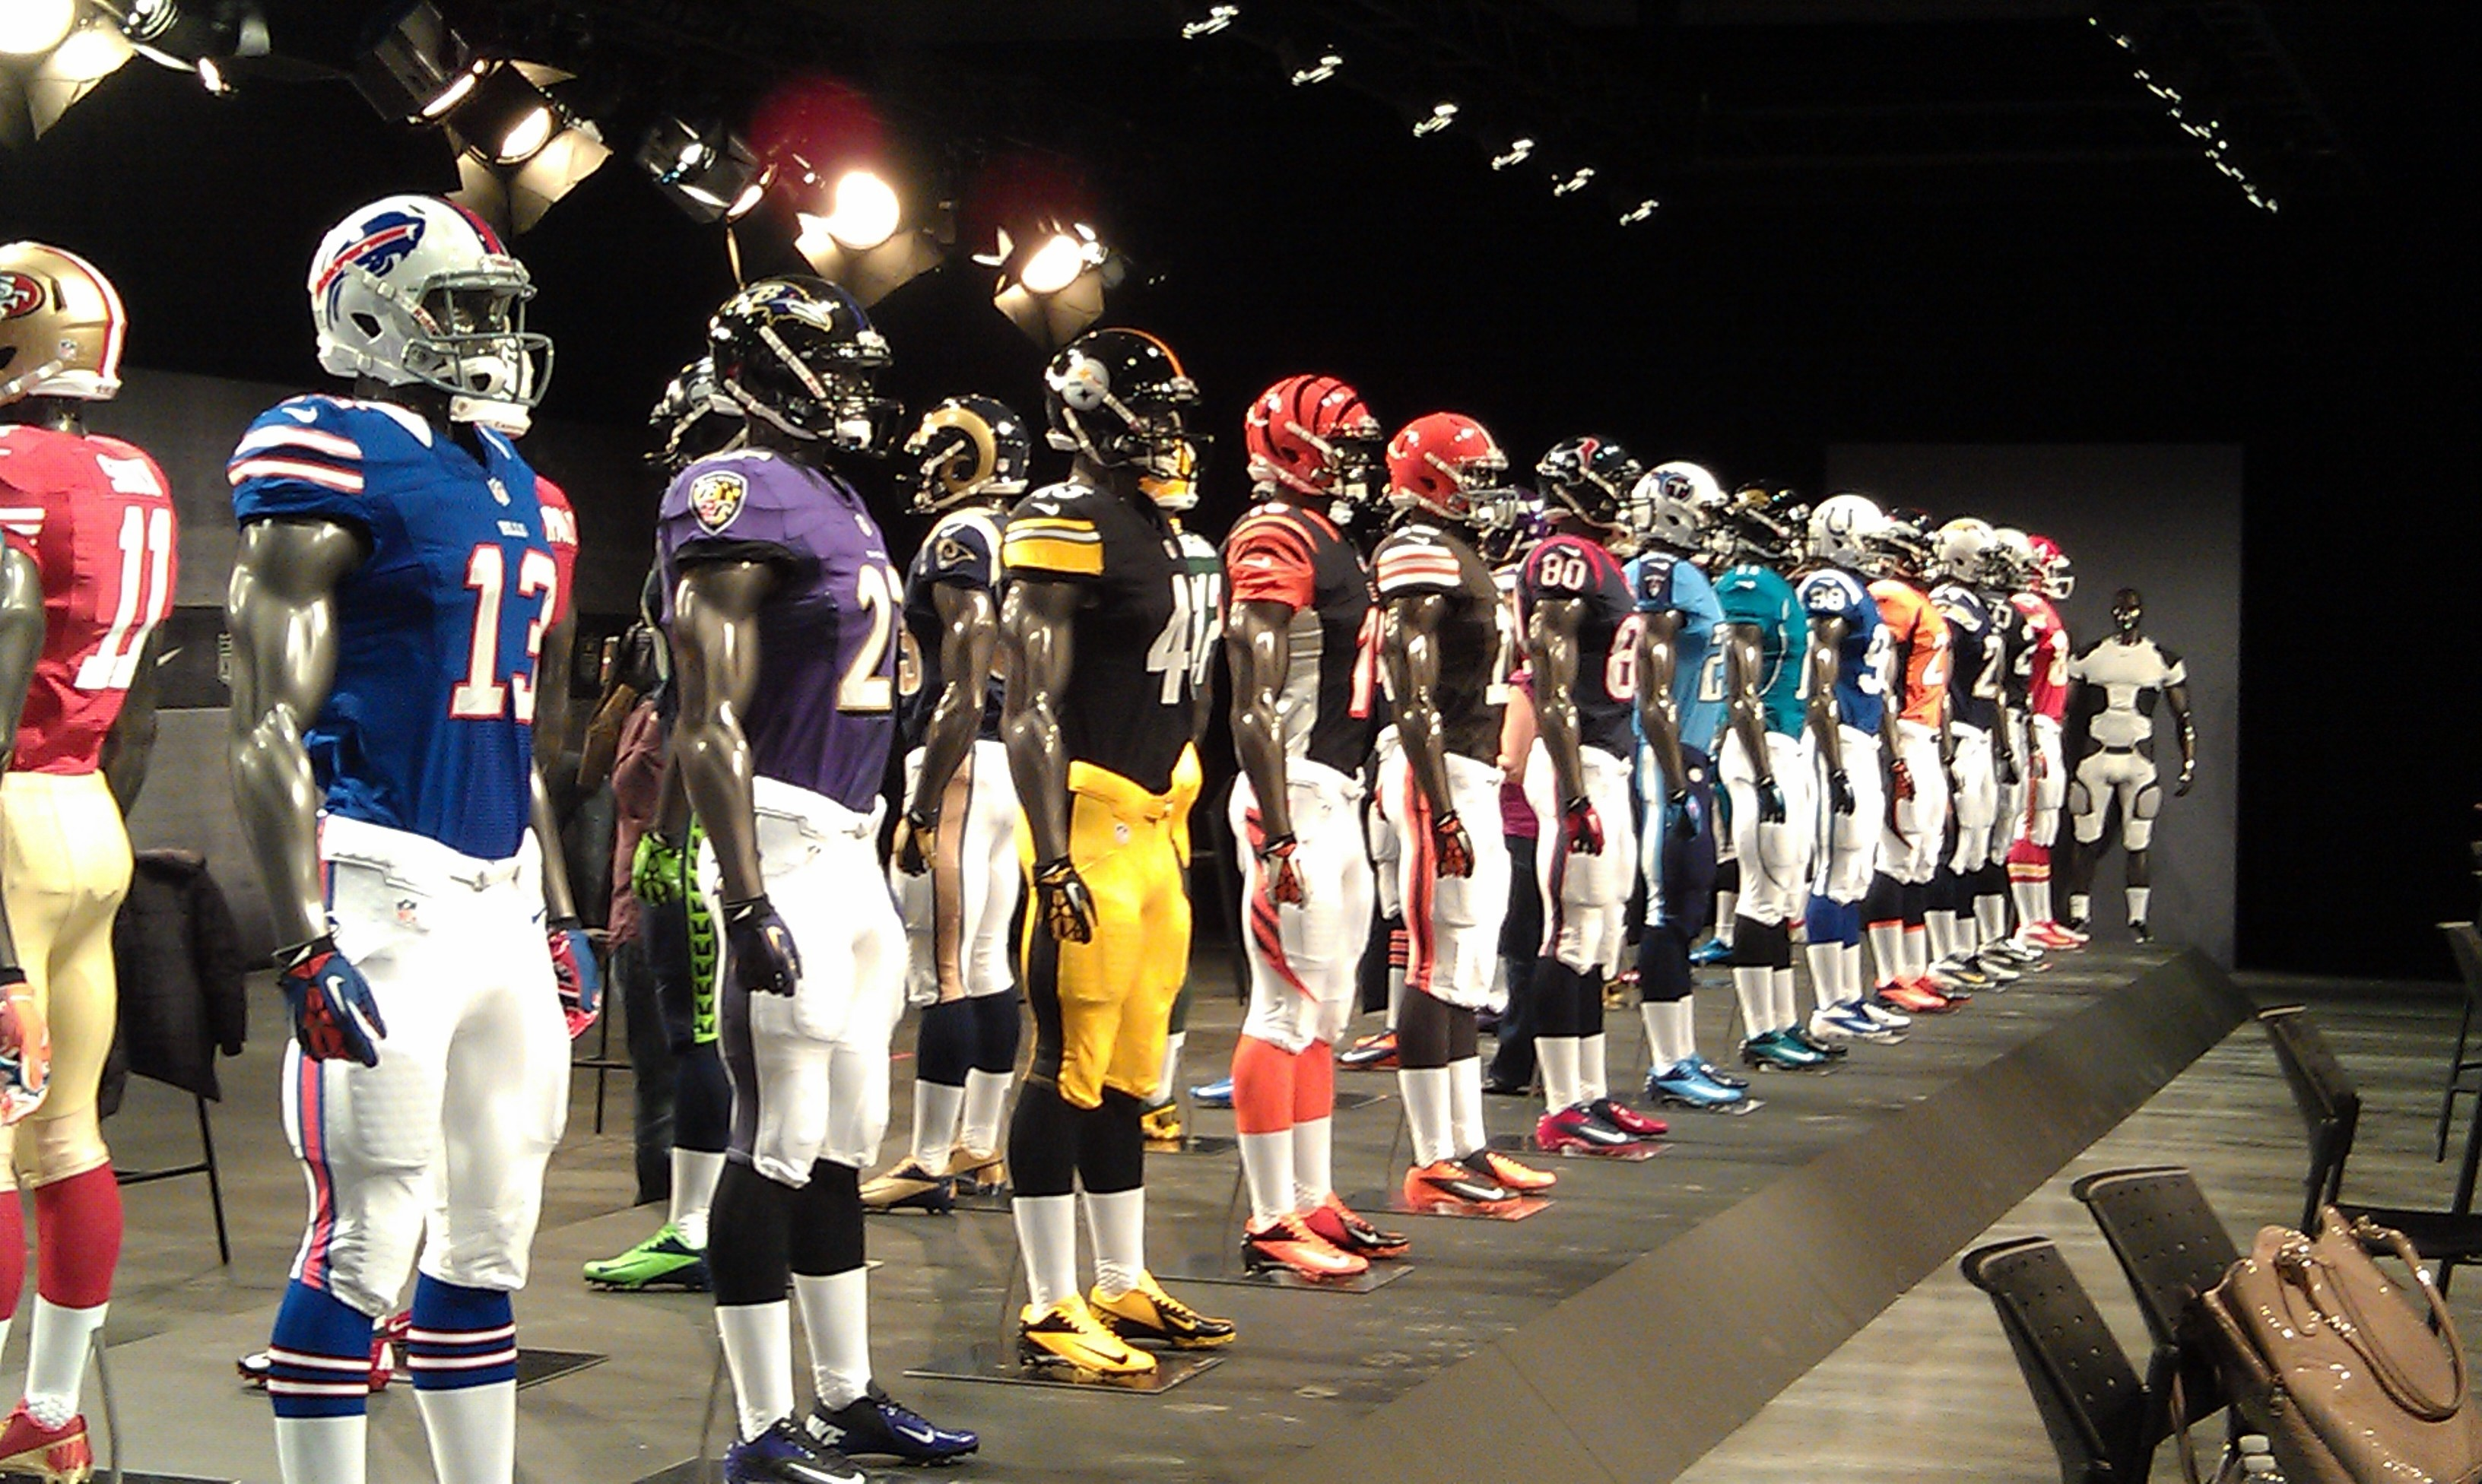 Ranking All 32 NFL Uniforms. NFL uniforms — there's the good, the ...